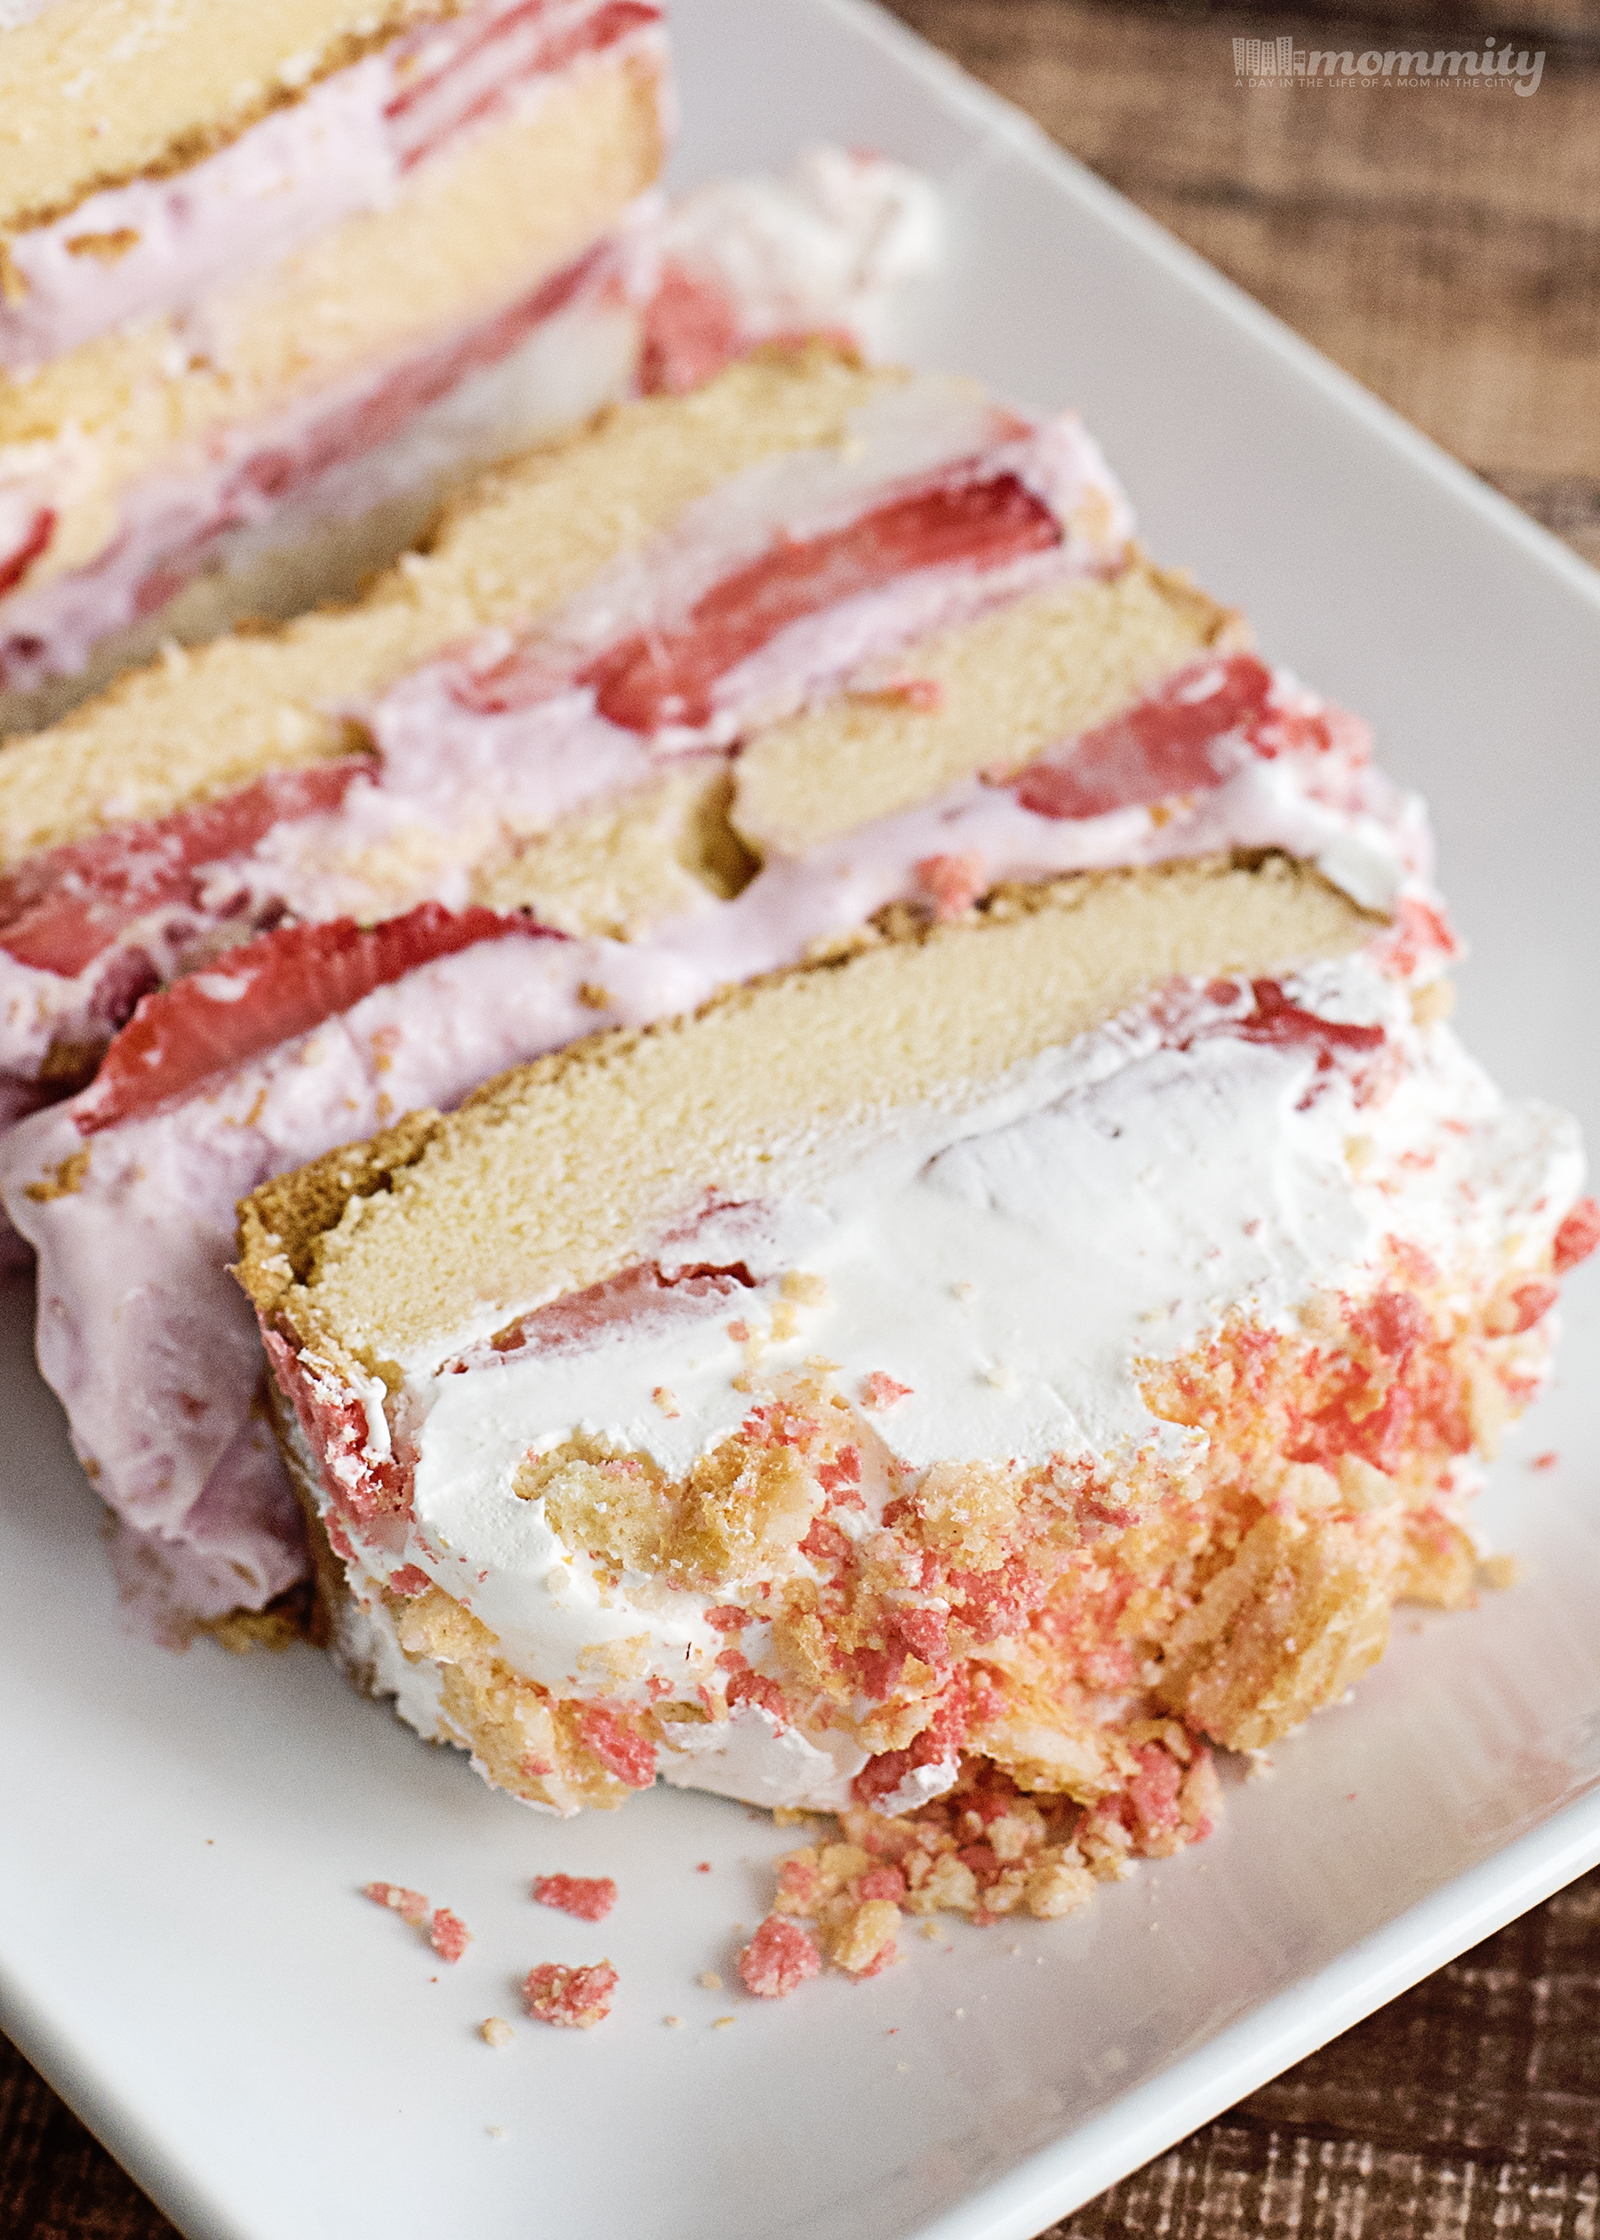 Are you looking for an easy strawberry shortcake recipe? This ice box cake recipe is family favorite!